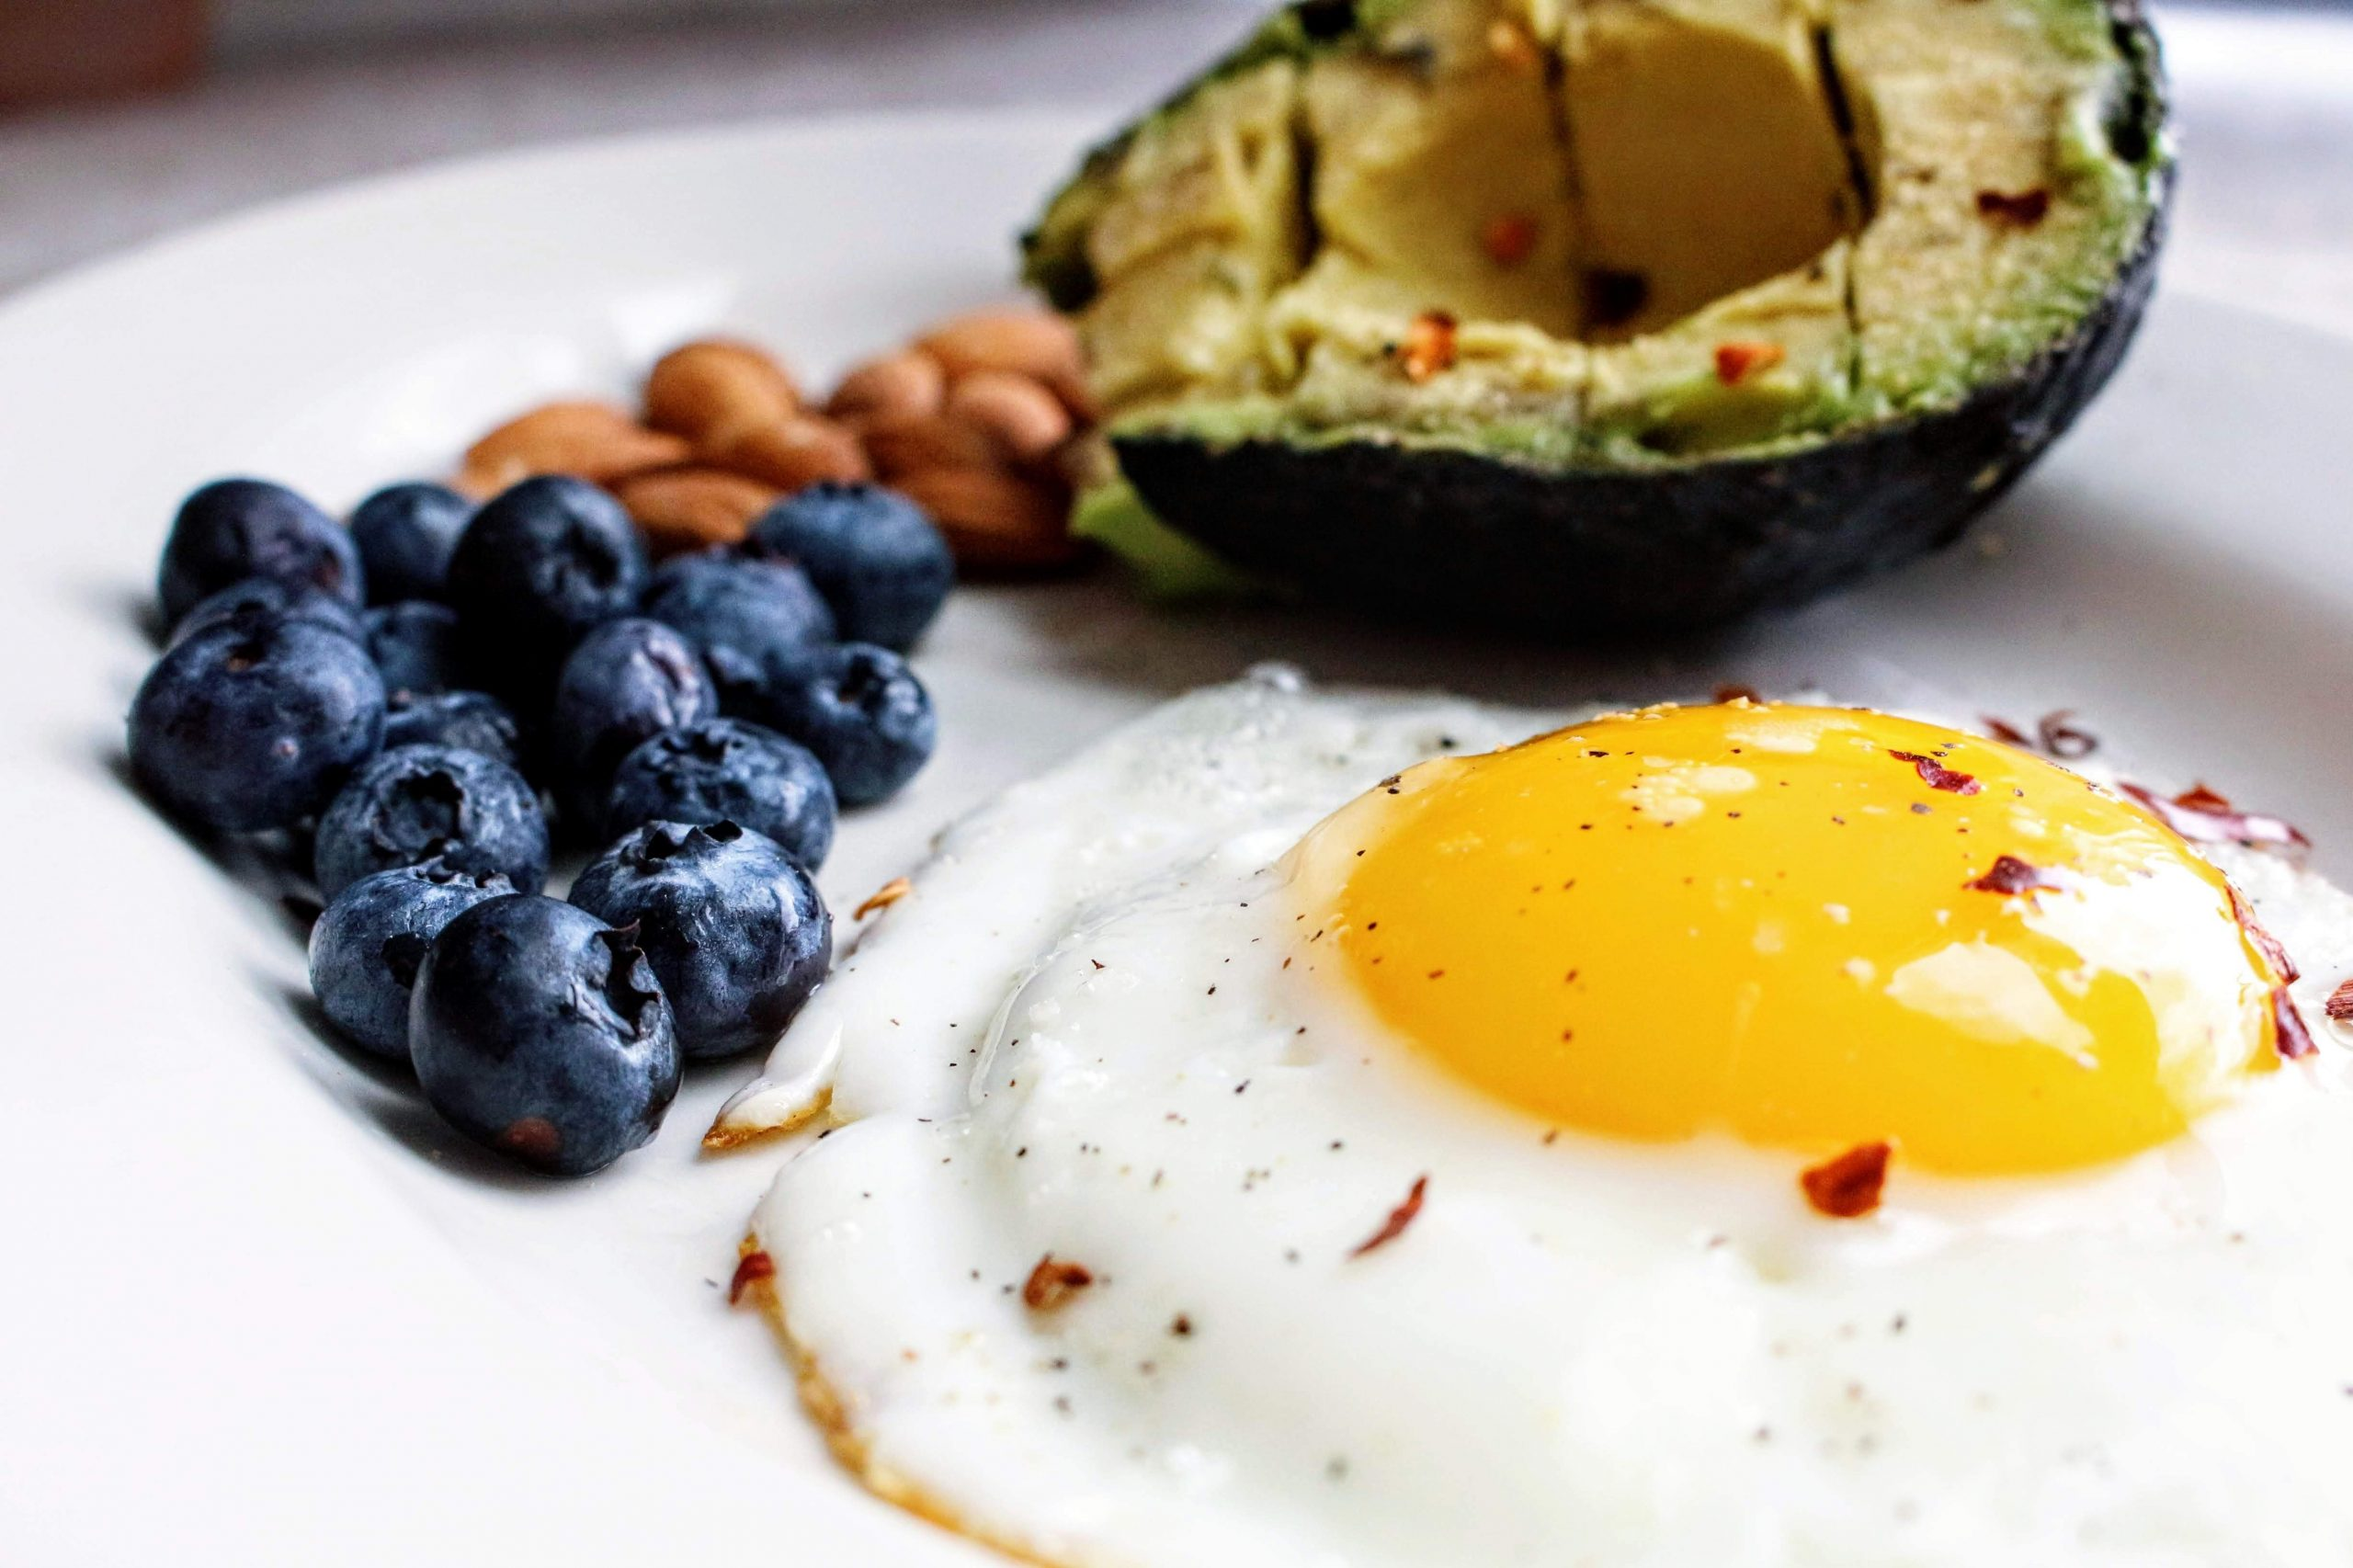 white plate with a sunny-side-up, blueberries, almonds and half an avocado